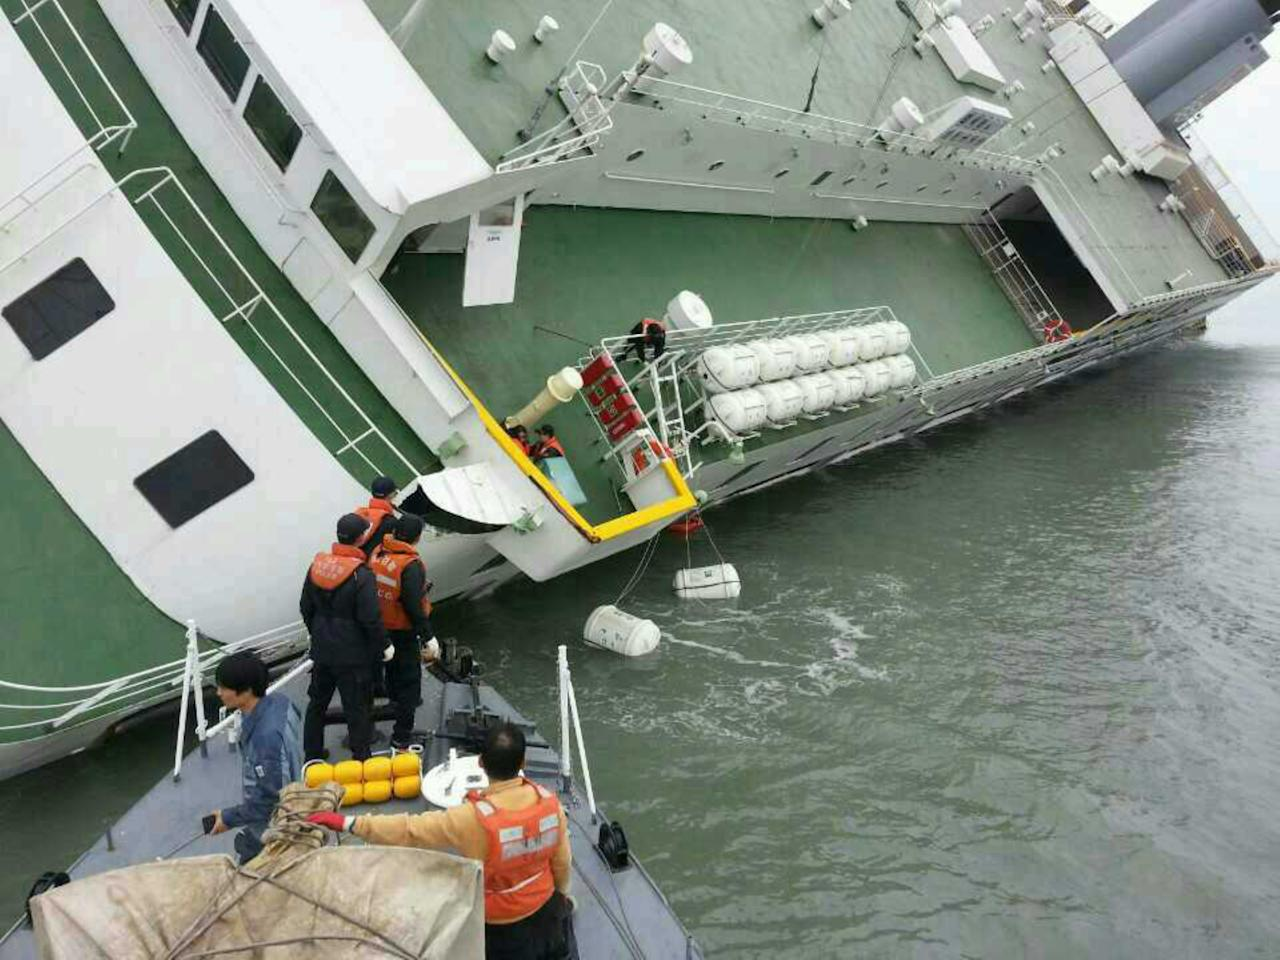 JINDO-GUN, SOUTH KOREA - APRIL 16: In this handout image provided by the Republic of Korea Coast Guard, passengers are rescued by the Republic of Korea Coast Guard from a ferry sinking off the coast of Jindo Island on April 16, 2014 in Jindo-gun, South Korea. The ferry identified as the Sewol was carrying about 470 passengers, including students and teachers, traveling to Jeju island. (Photo by The Republic of Korea Coast Guard via Getty Images)